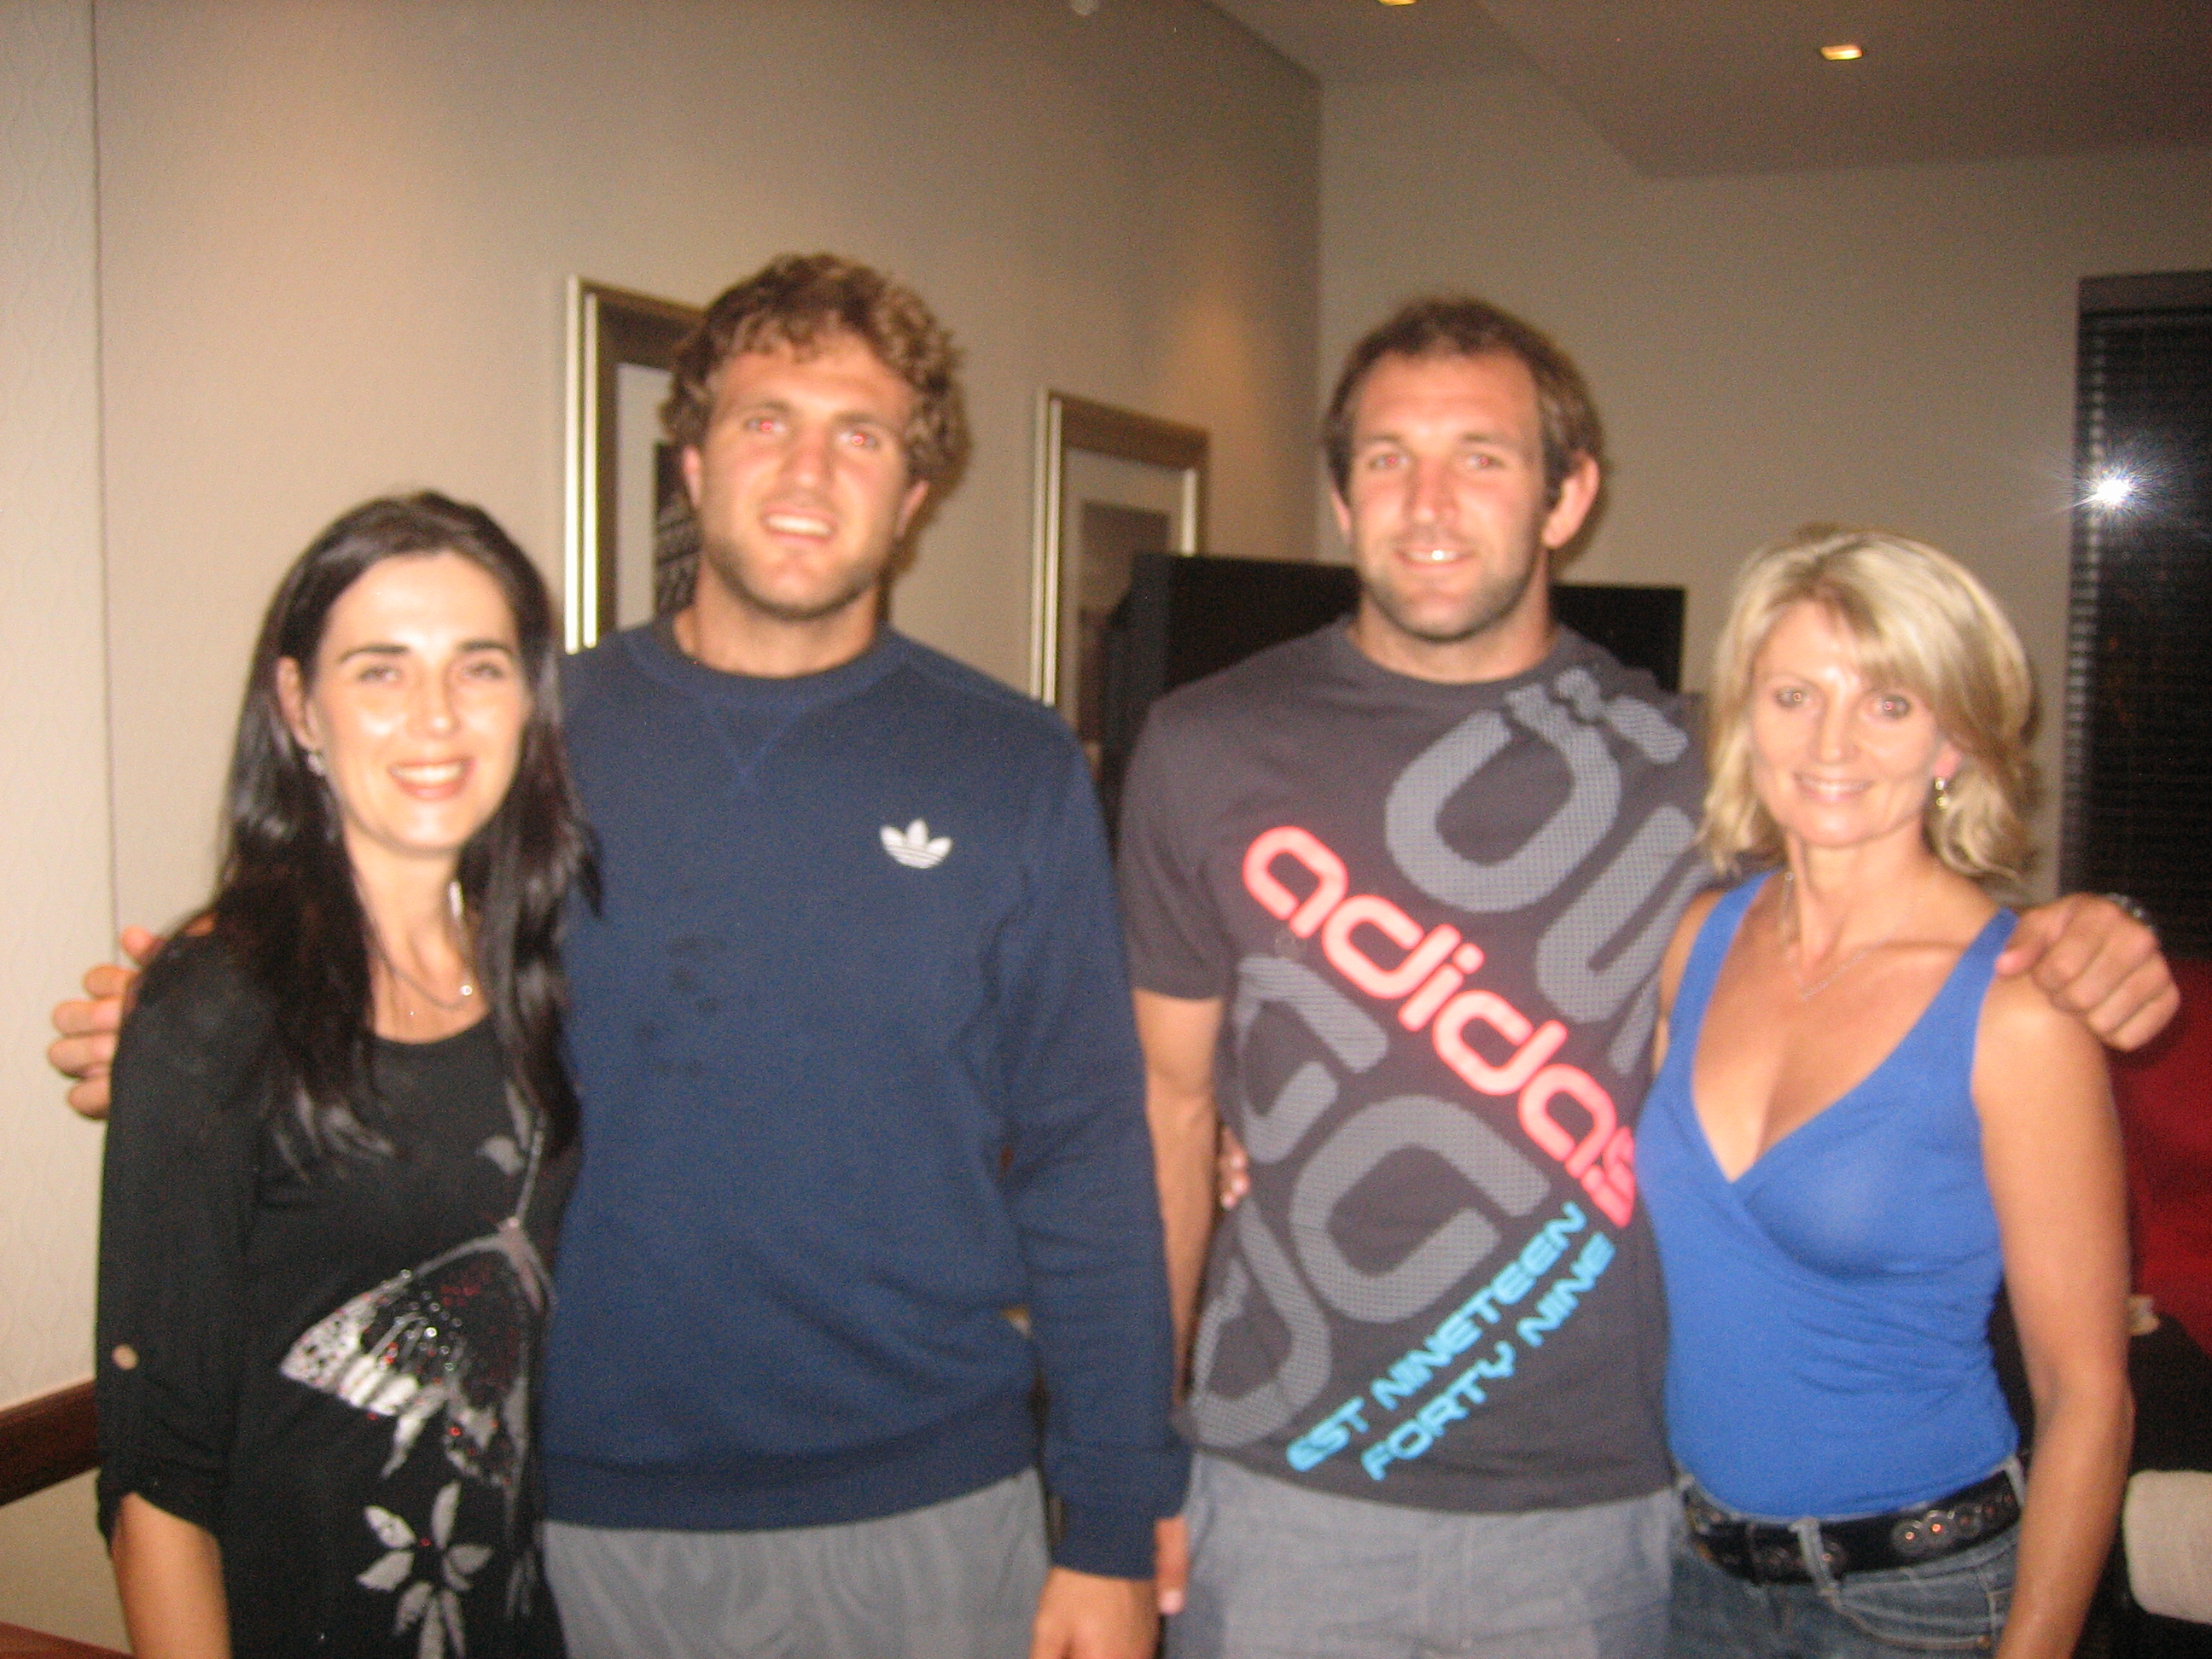 Janine, Luke and George Whitelock and Brigi, Crusaders 2012